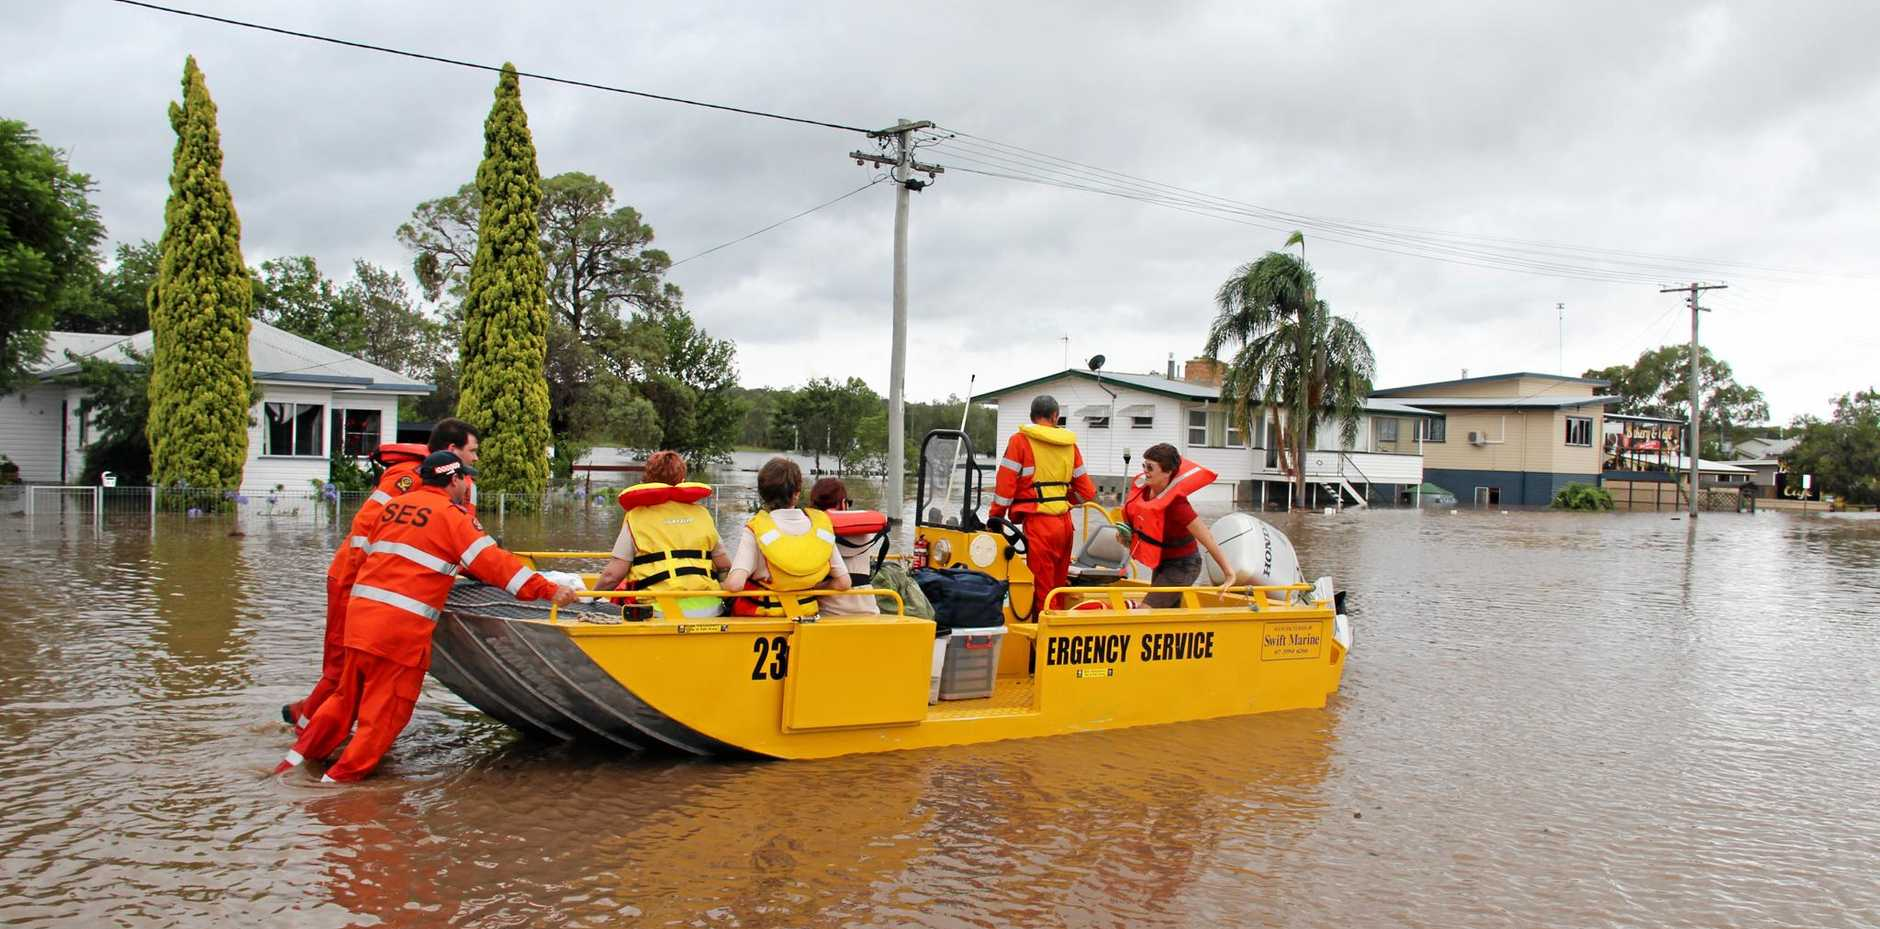 HARD WORK: Warwick SES volunteers in the floodwaters in Fitzroy St, transporting medical teams and supplies to affected areas in East Warwick in floods in 2013.